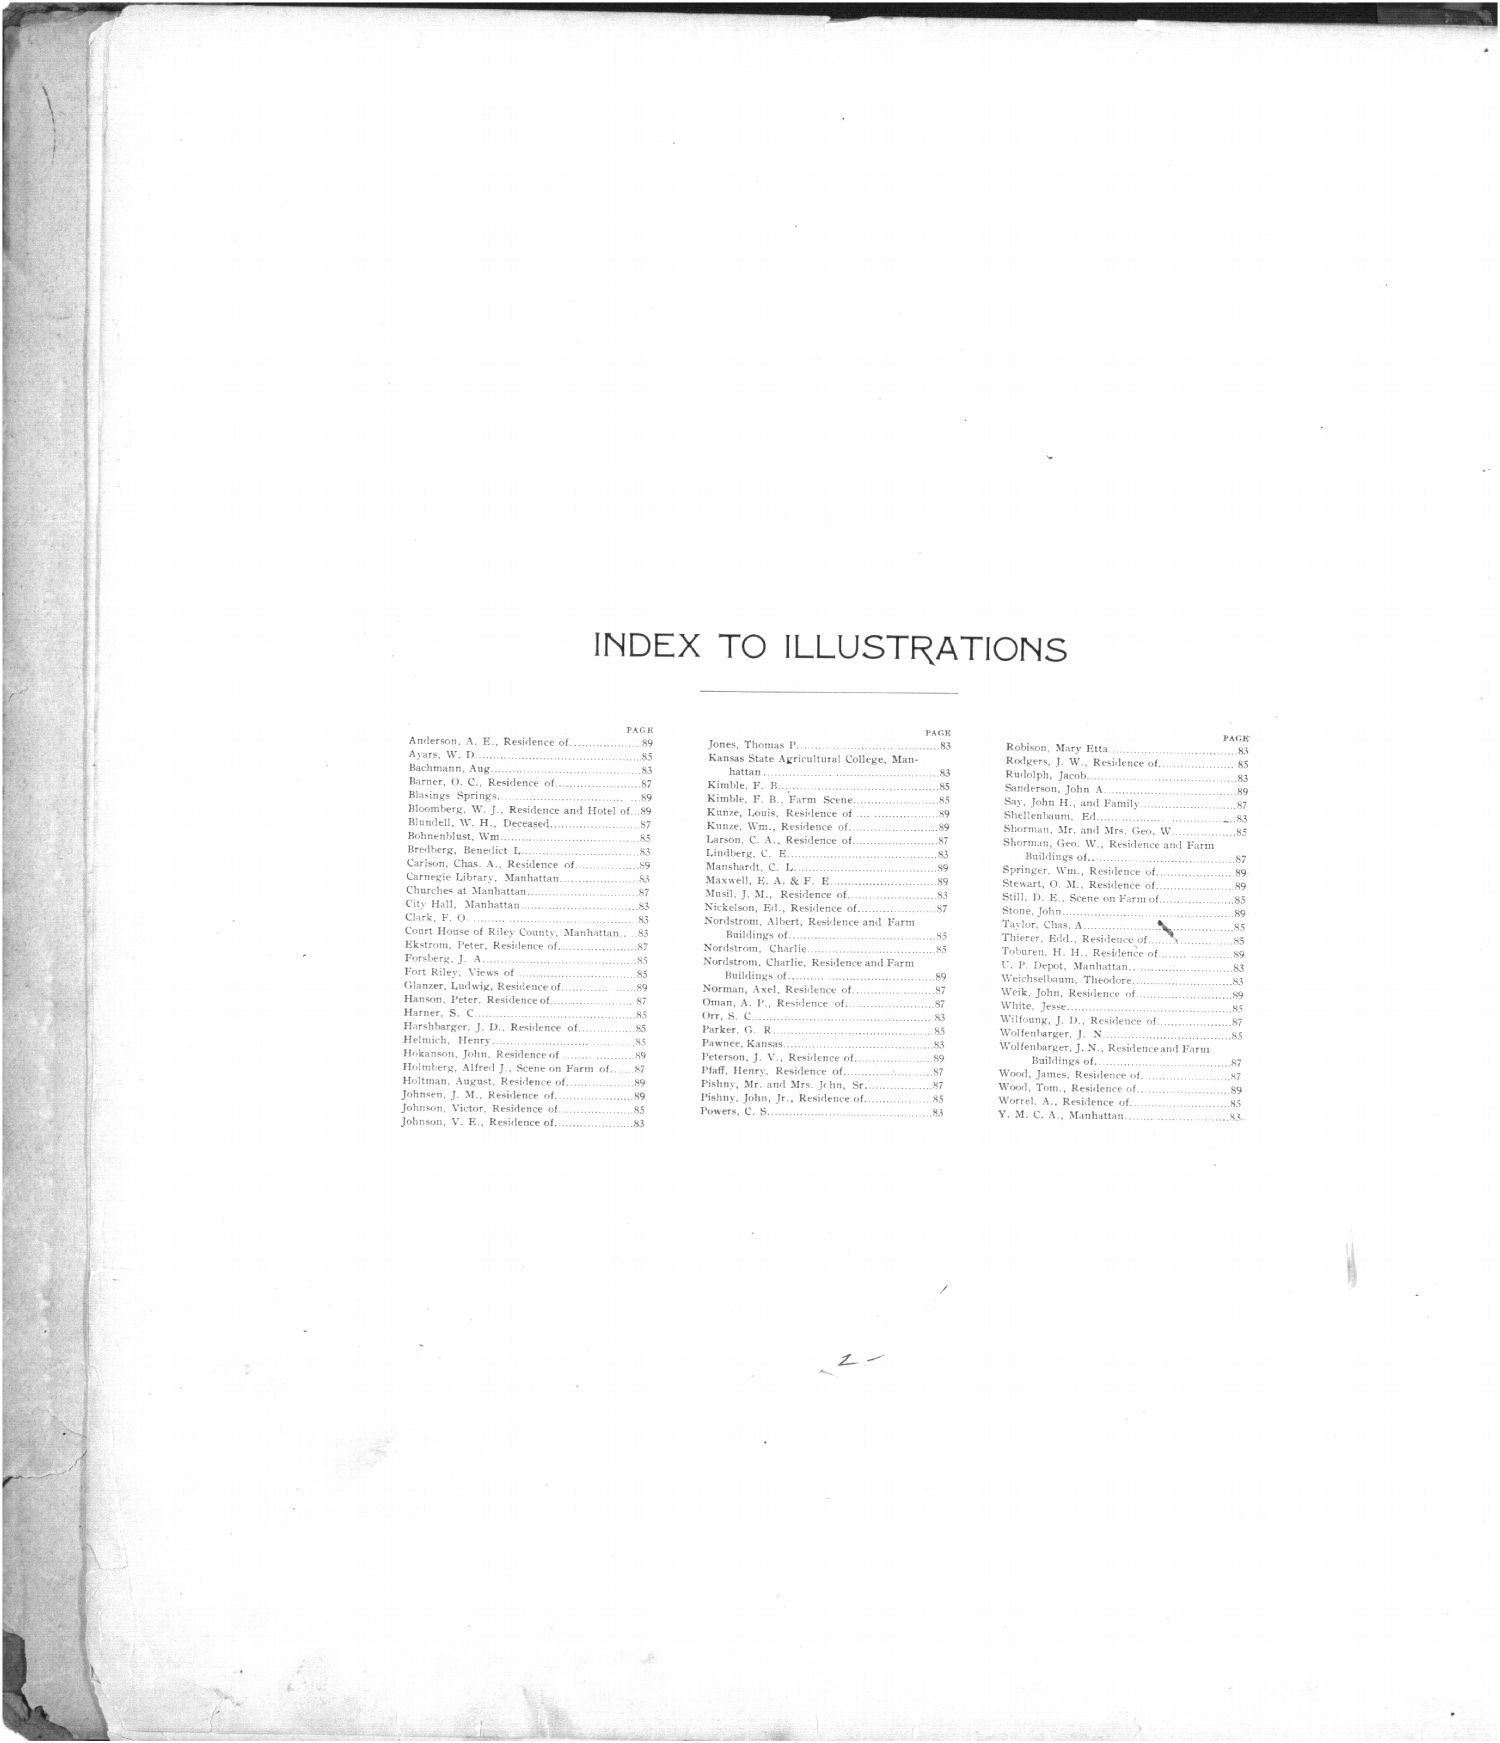 Standard atlas of Riley County, Kansas - Index to Illustrations